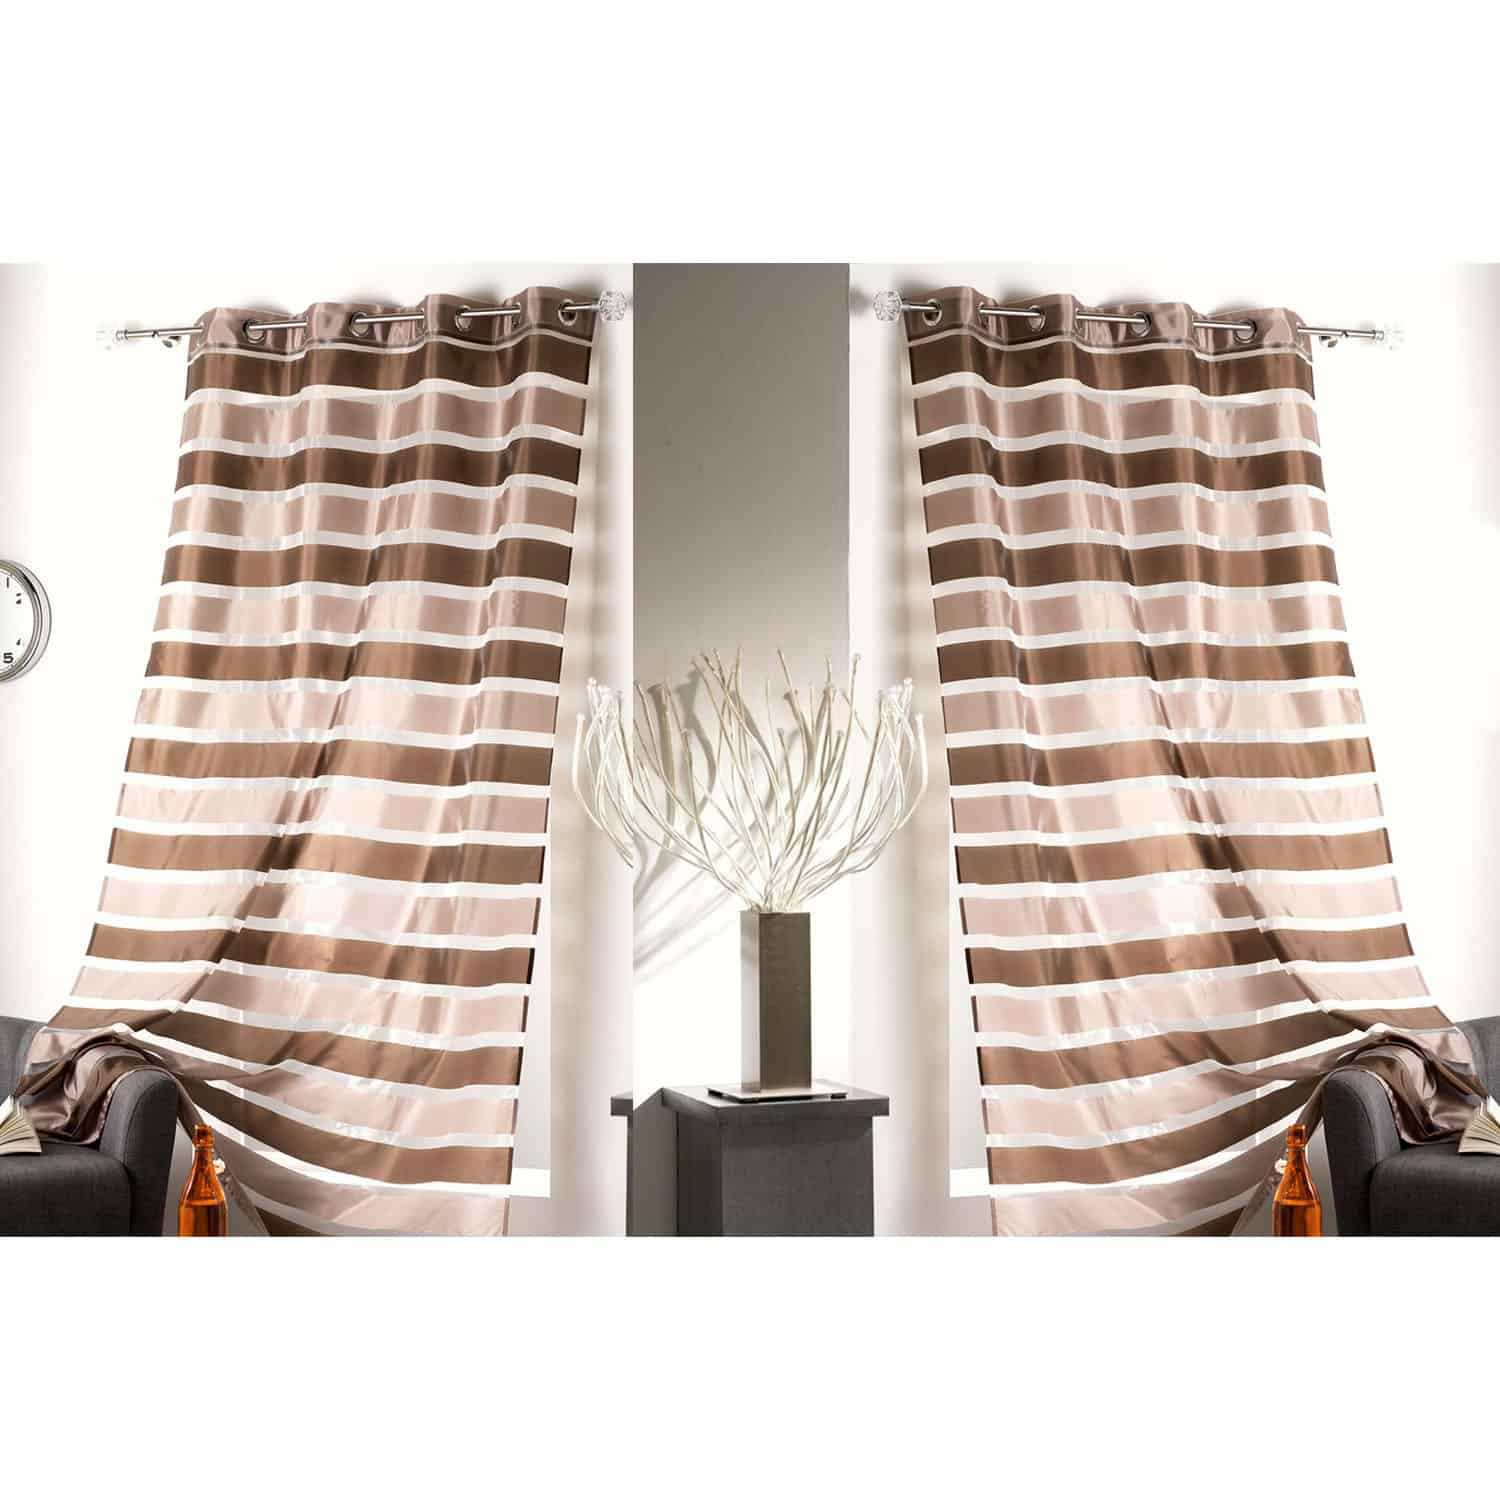 Striped Sheer Grommet Curtain Panels Colorado 55 W x 95 L BROWN